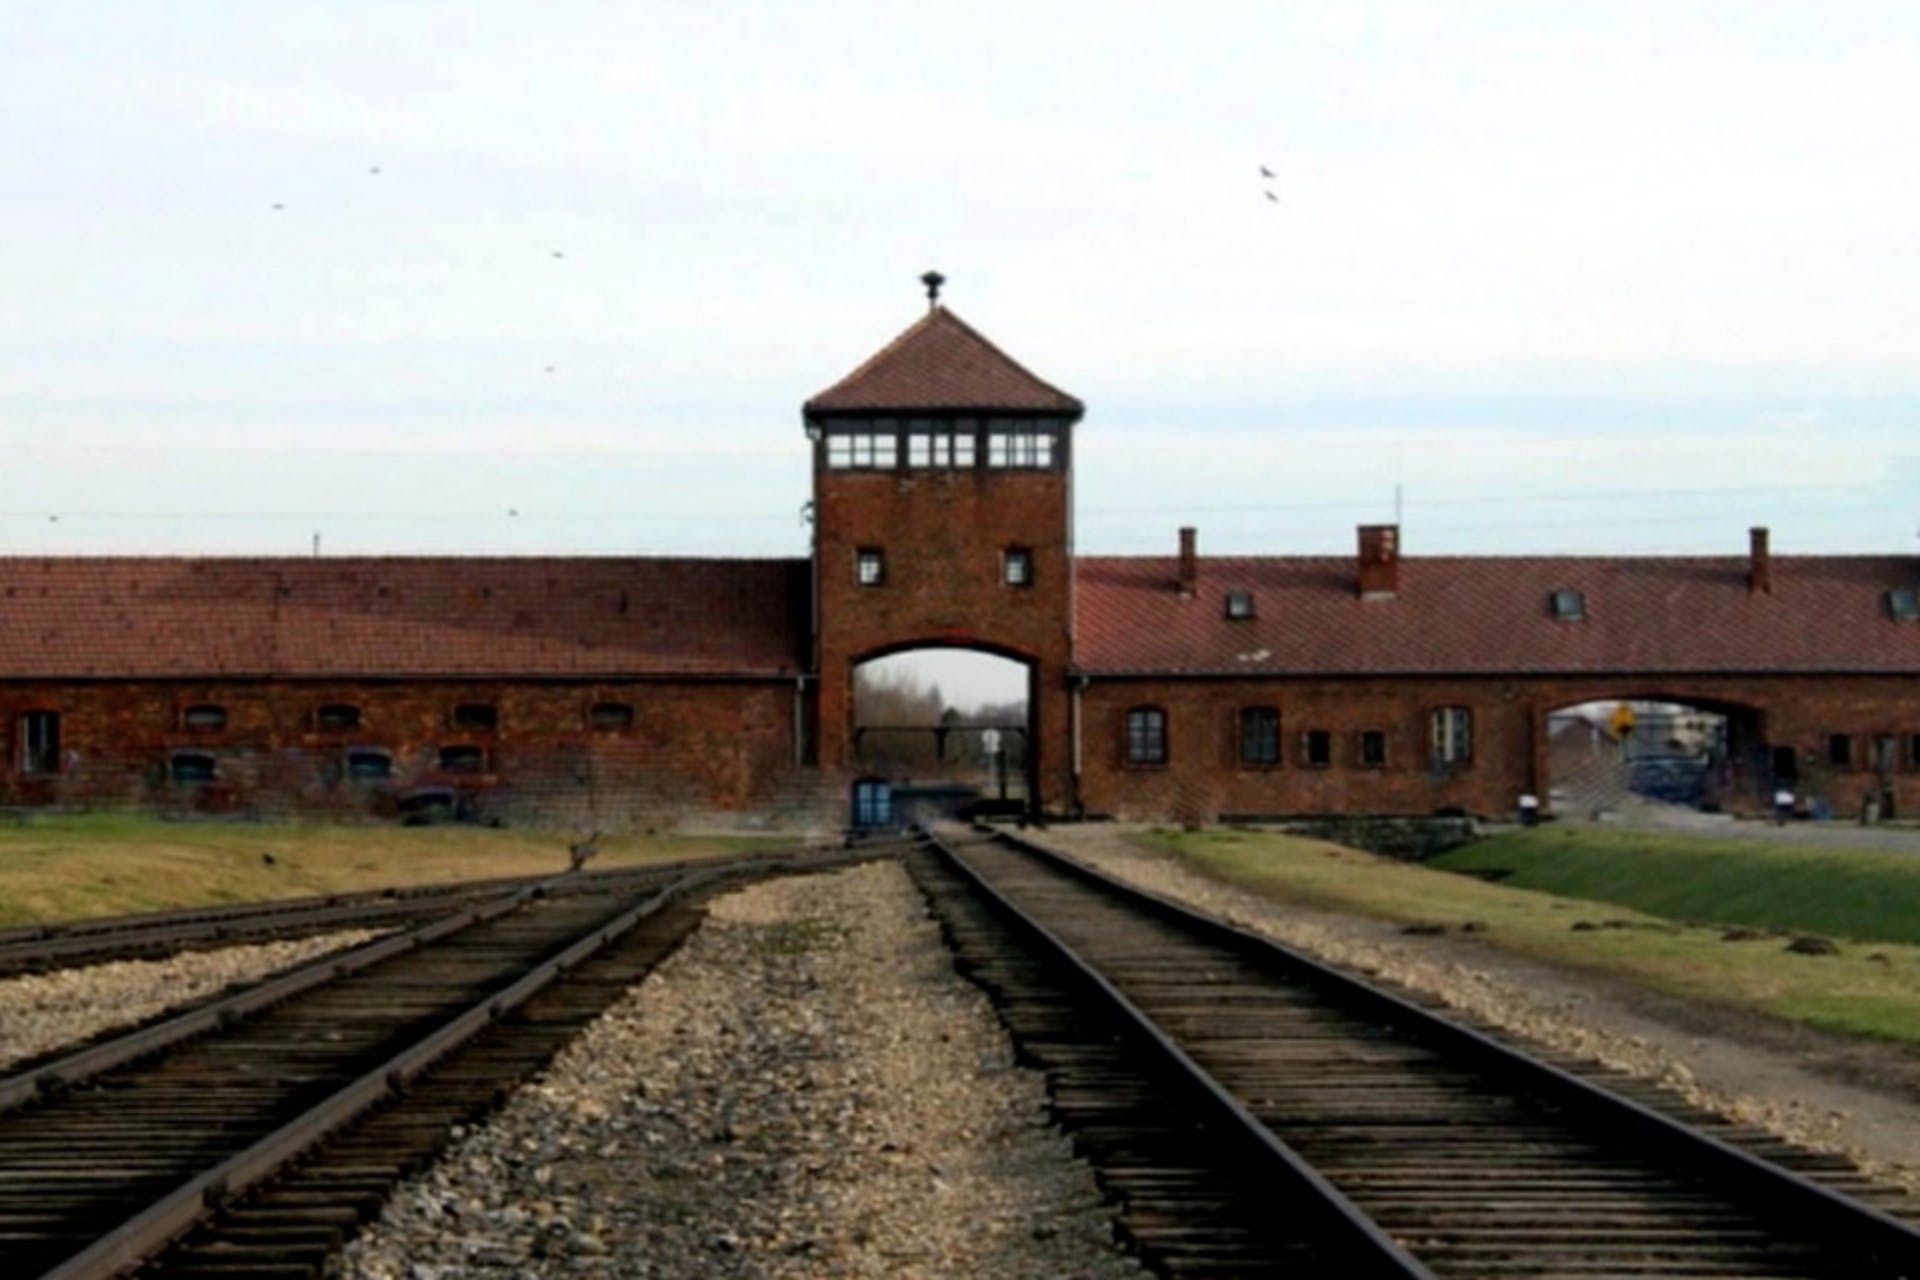 Transport XX to Auschwitz